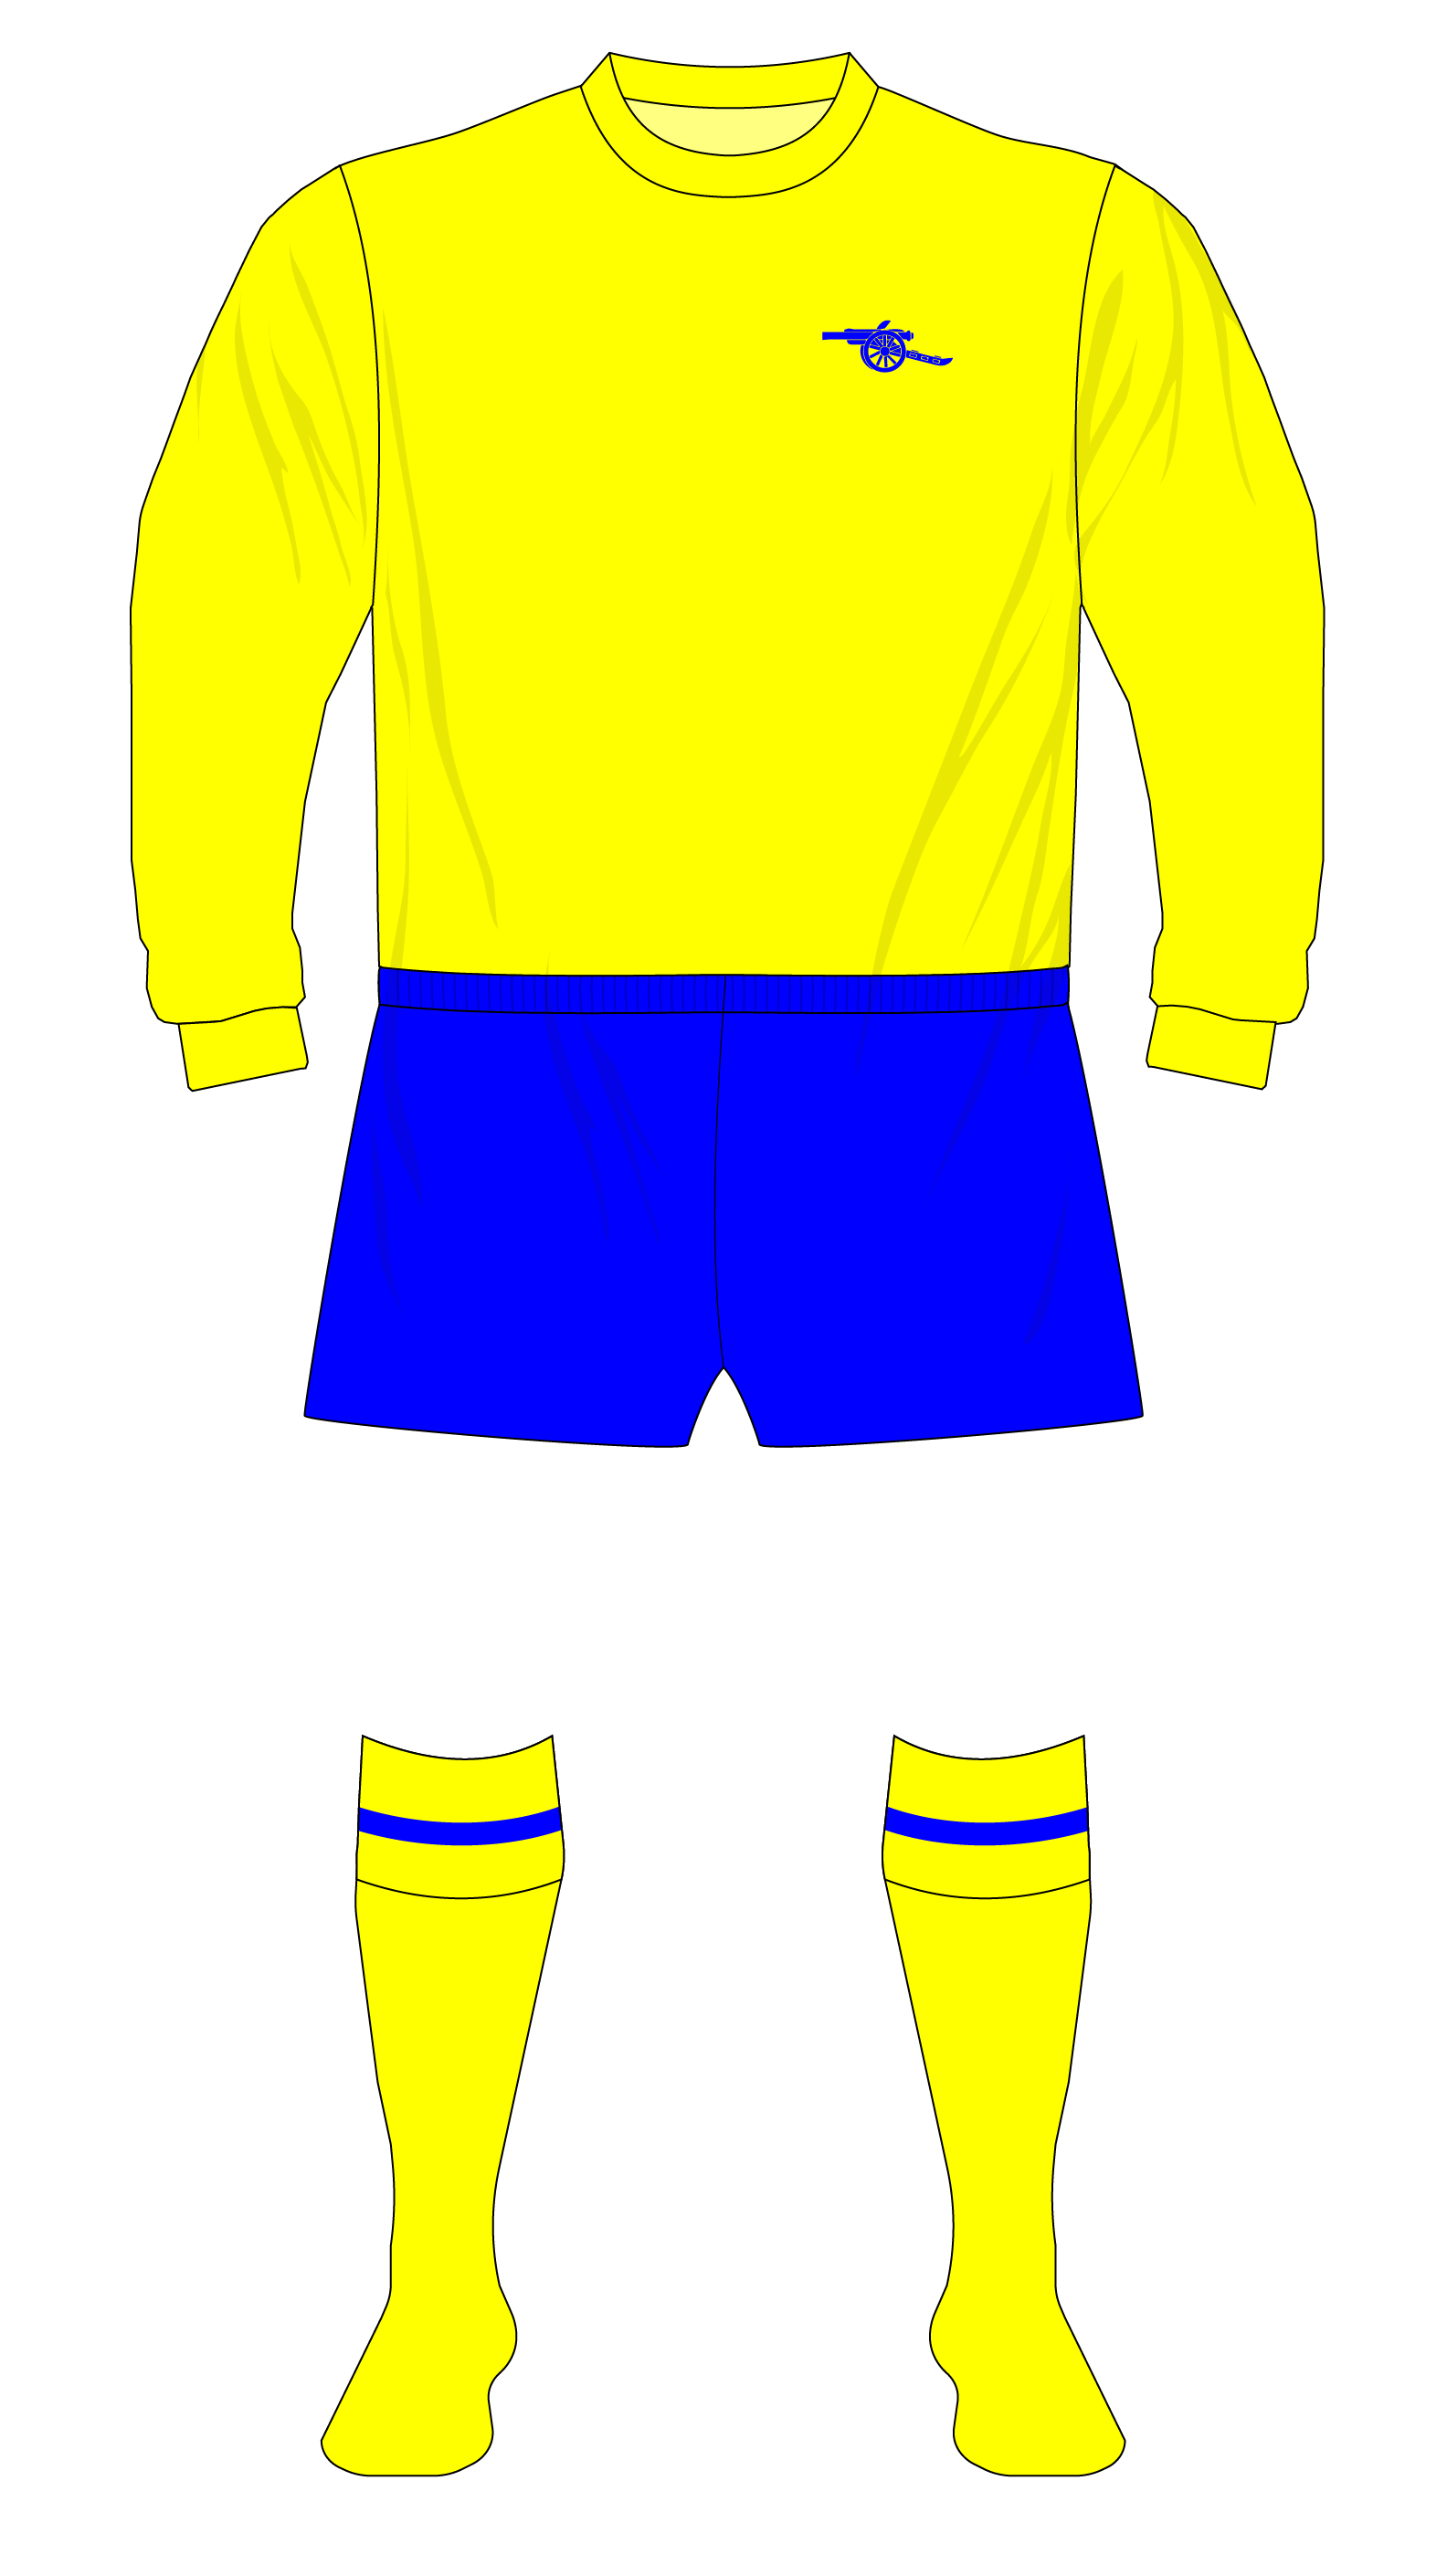 How Arsenal s return to white sleeves inadvertently led to the creation of  an FA Cup kit – Museum of Jerseys 8efc82bcf